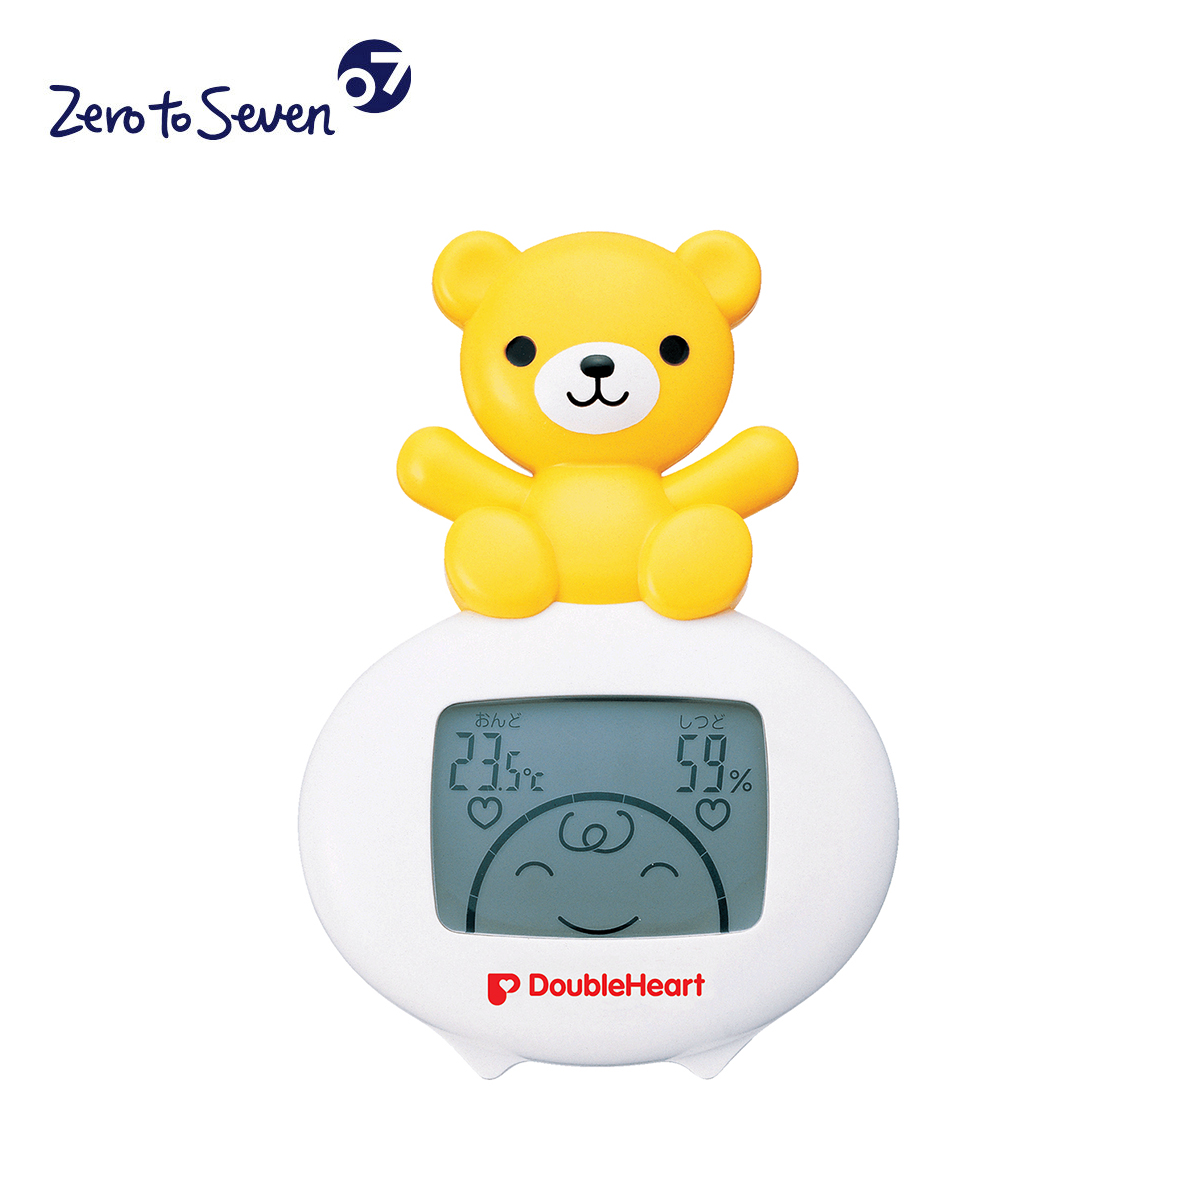 Korea genuine direct mail double heart infant baby thermometer teddy bear style